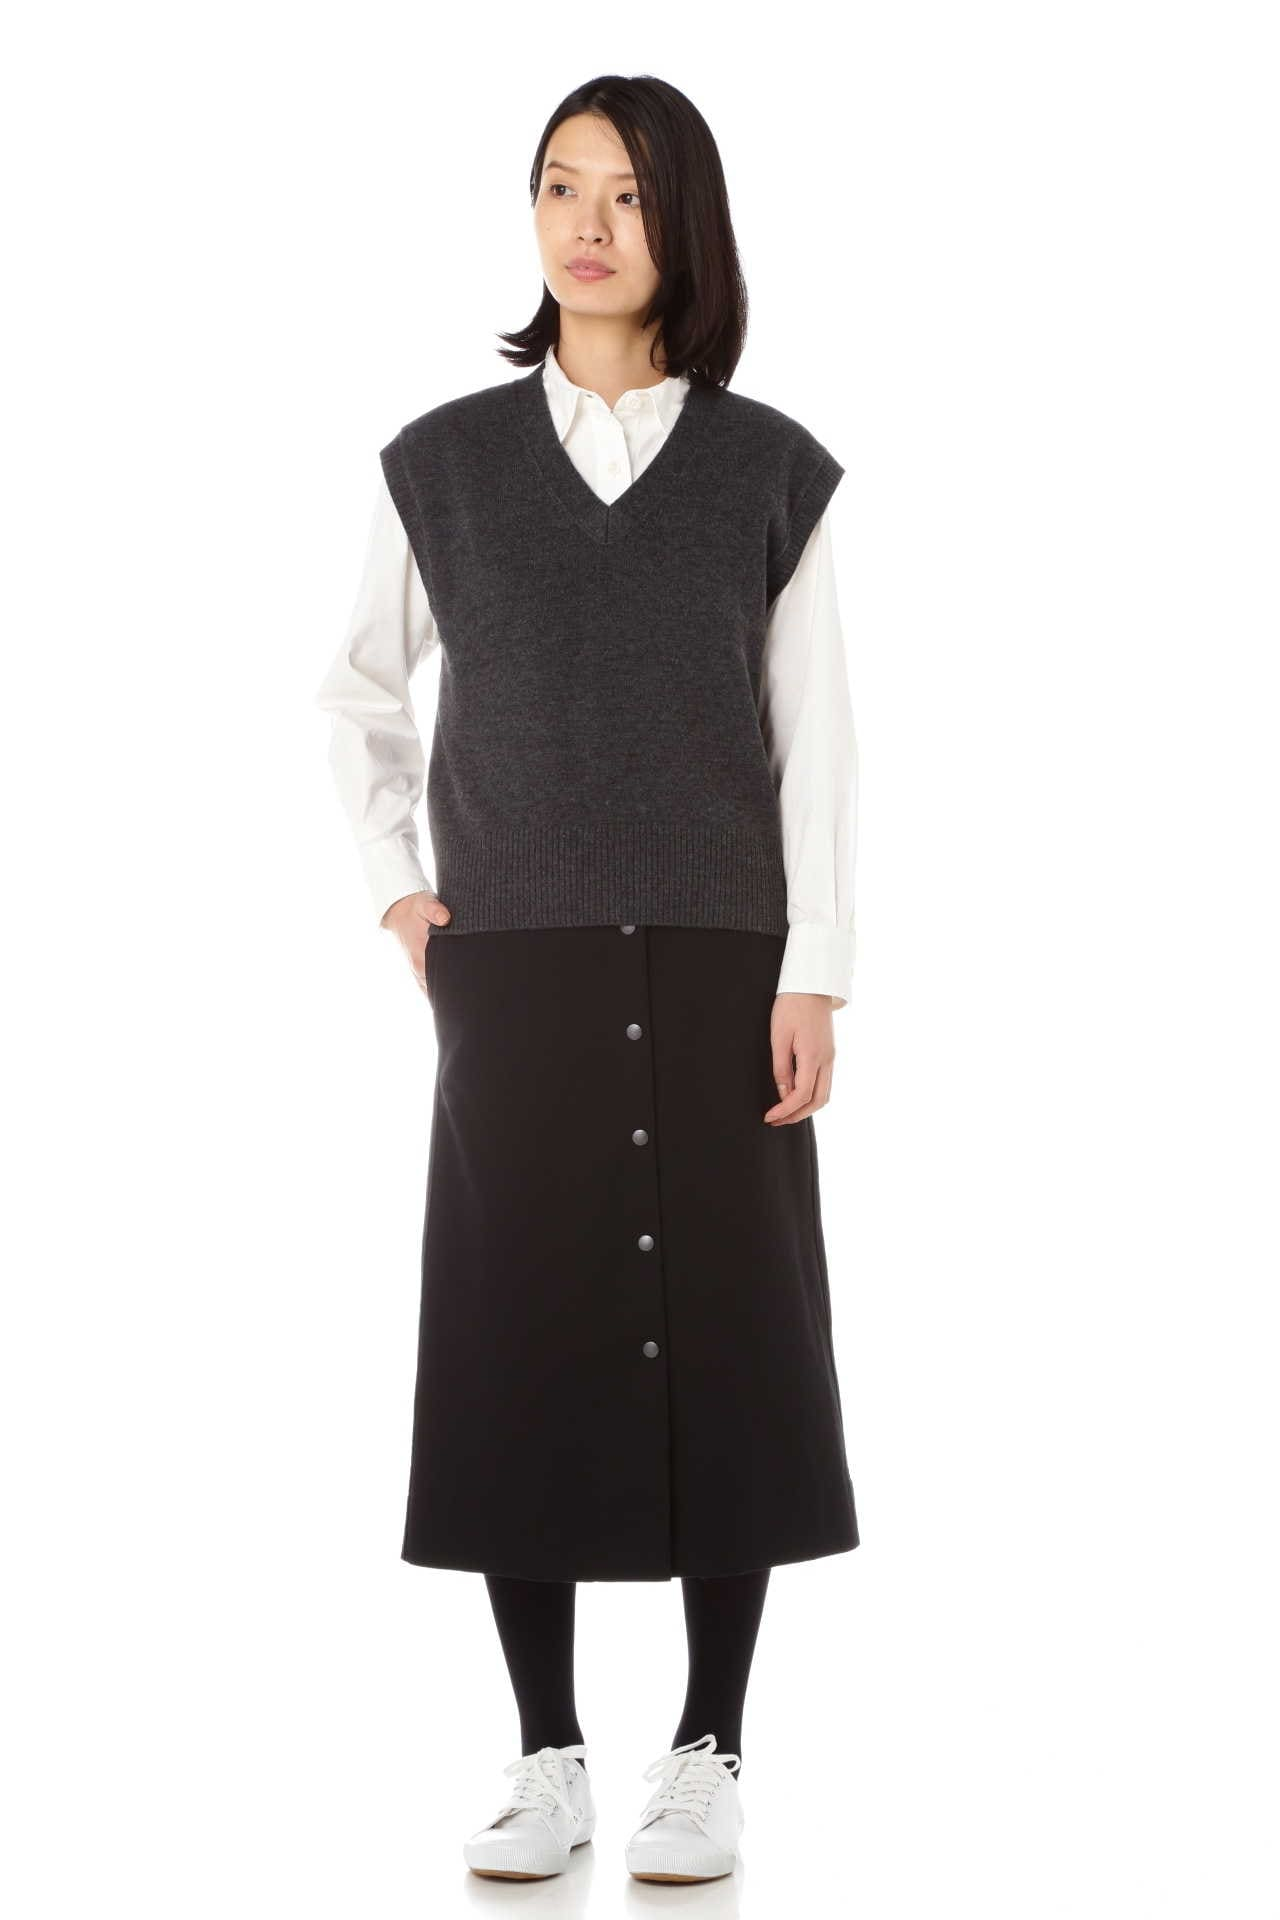 FINE WOOL(MHL SHOP限定)8